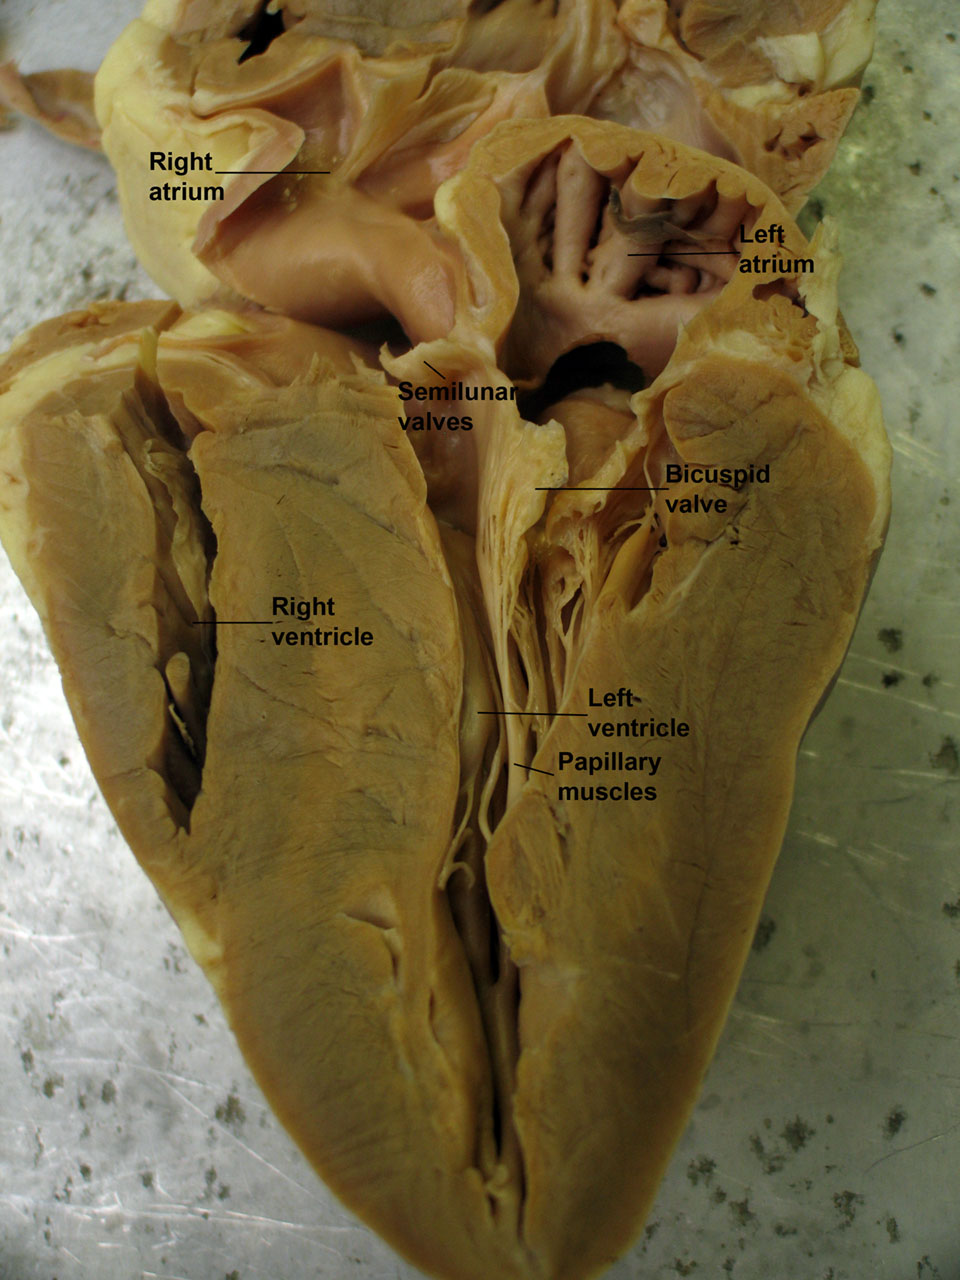 Printables Sheep Heart Dissection Lab its a matter of the heart httpwww quepid orgwordpresswp contentuploads200812sheep heart1 jpg